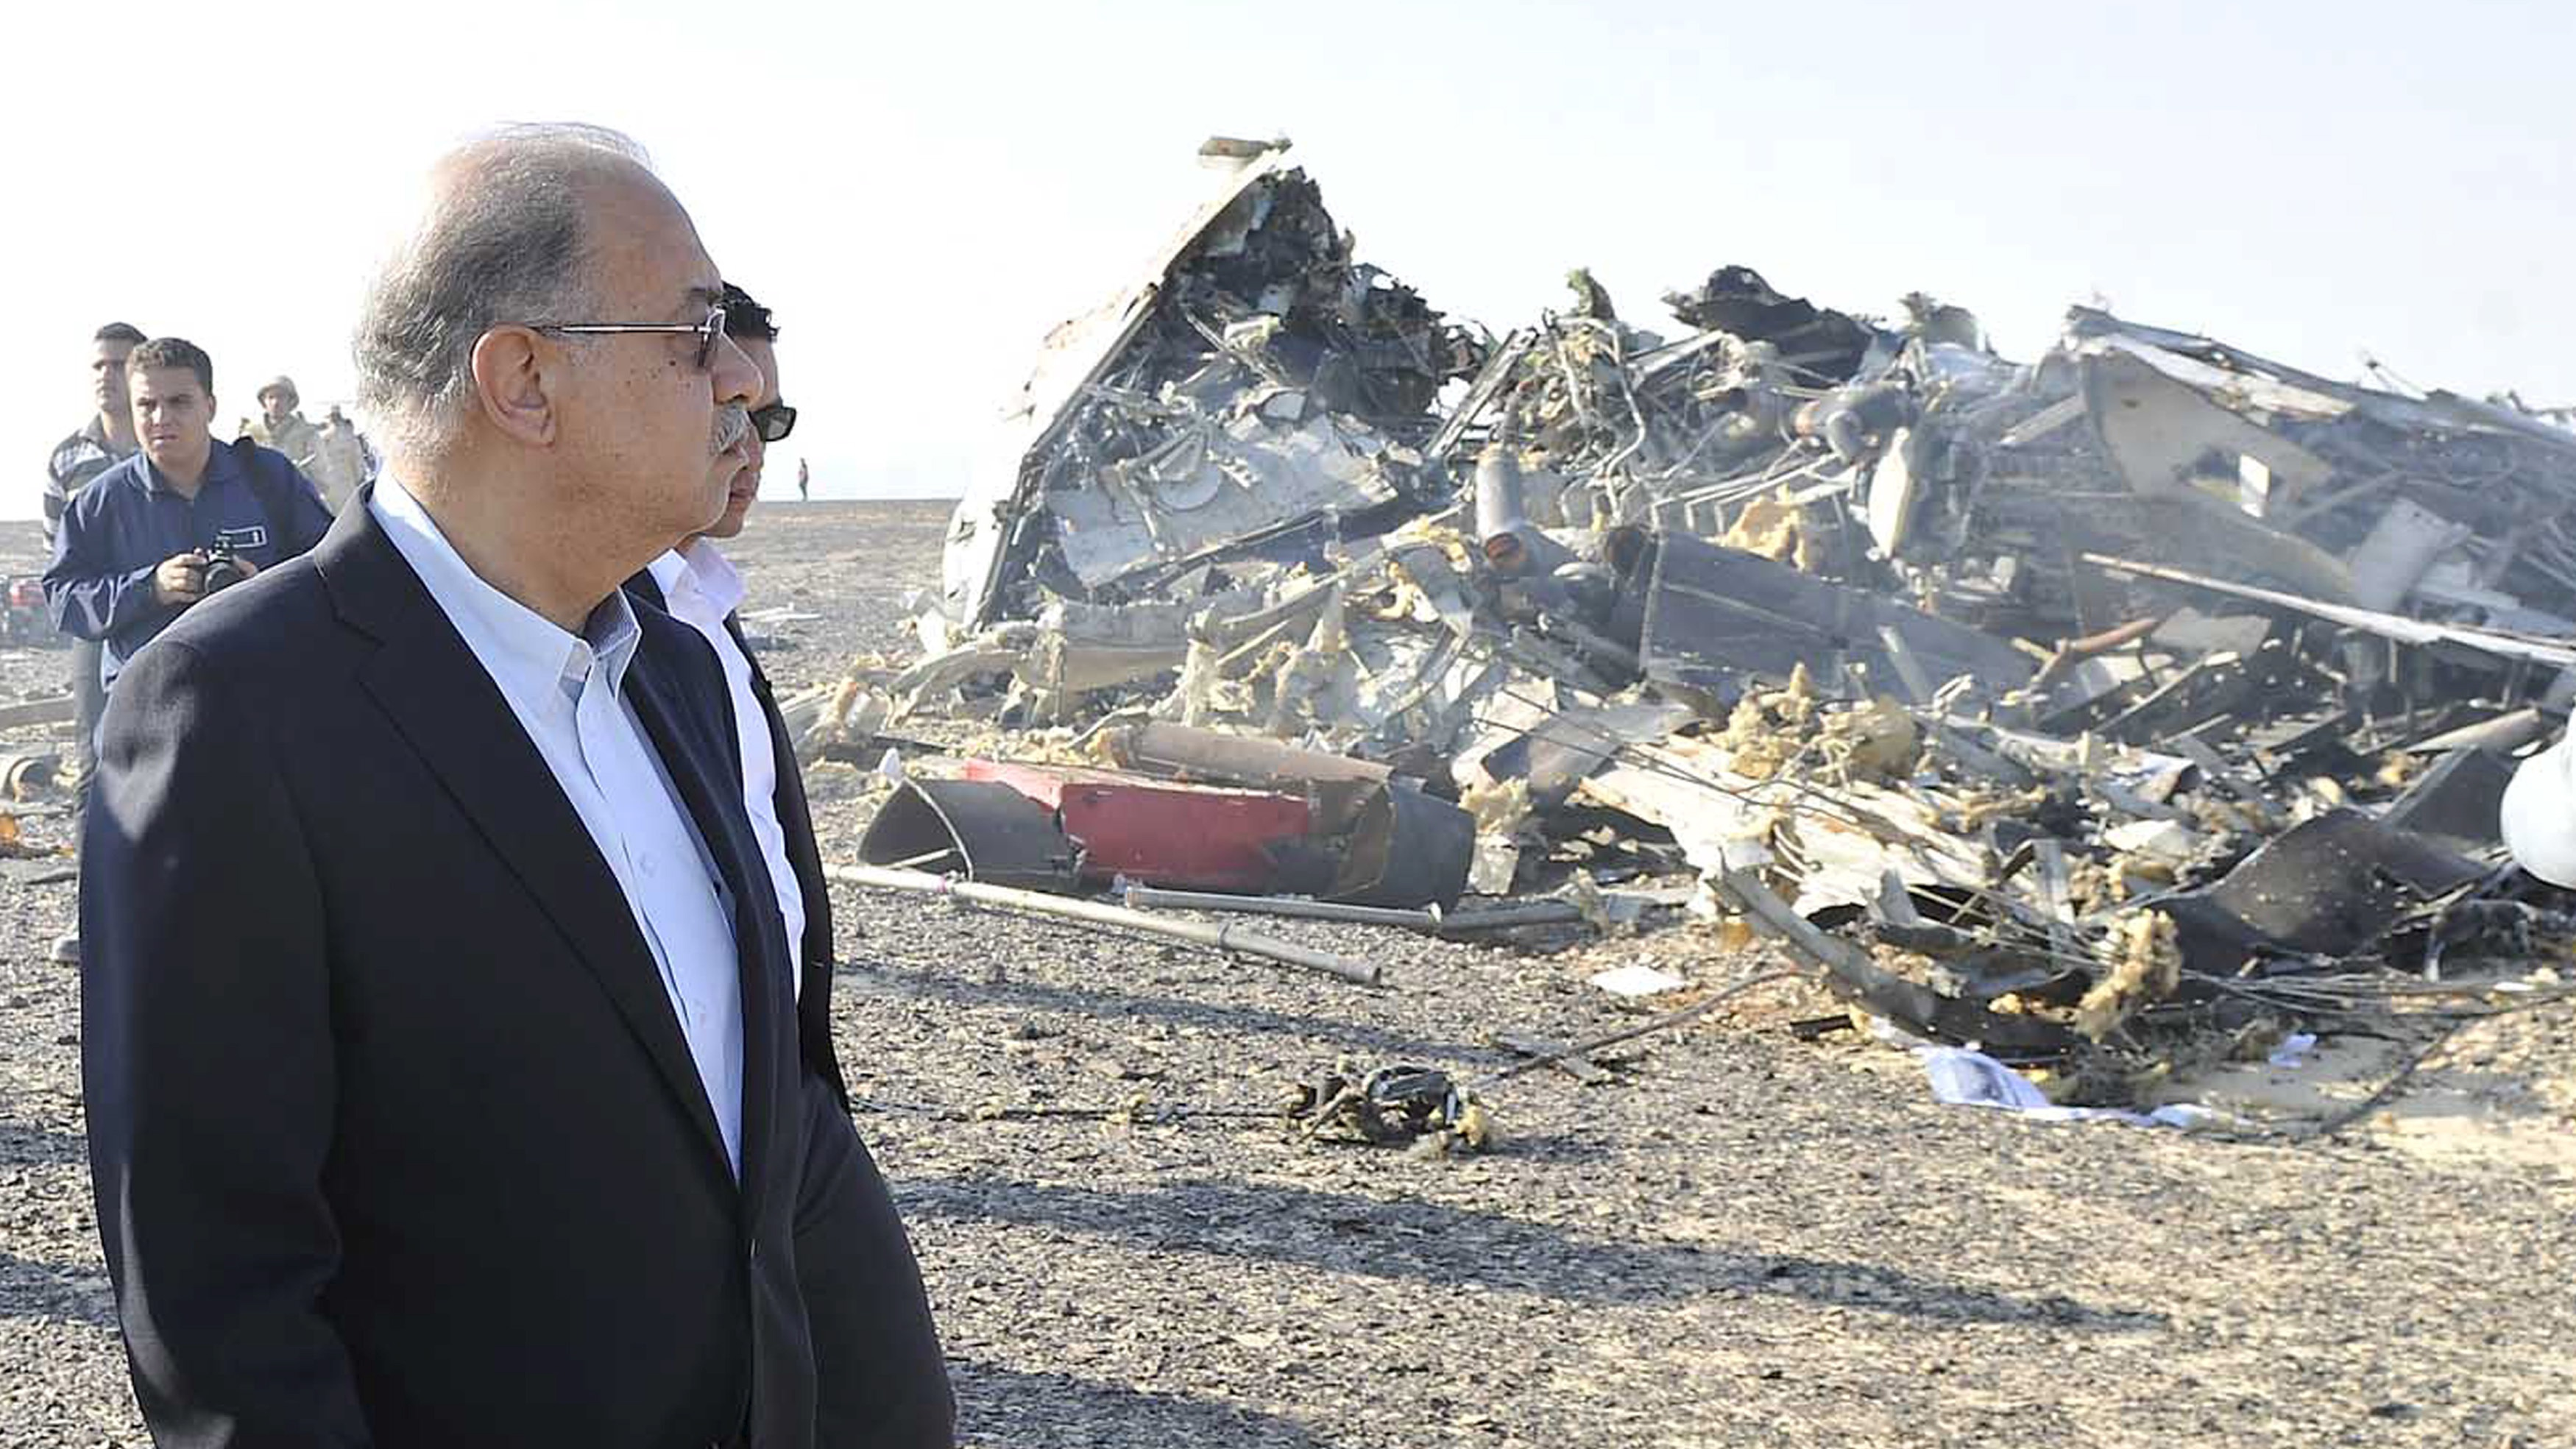 Egypt's Prime Minister Sherif Ismail looks at the remains of a Russian airliner after it crashed in central Sinai near El Arish city, north Egypt, October 31, 2015. The Airbus A321, operated by Russian airline Kogalymavia under the brand name Metrojet, carrying 224 passengers crashed into a mountainous area of Egypt's Sinai peninsula on Saturday shortly after losing radar contact near cruising altitude, killing all aboard.